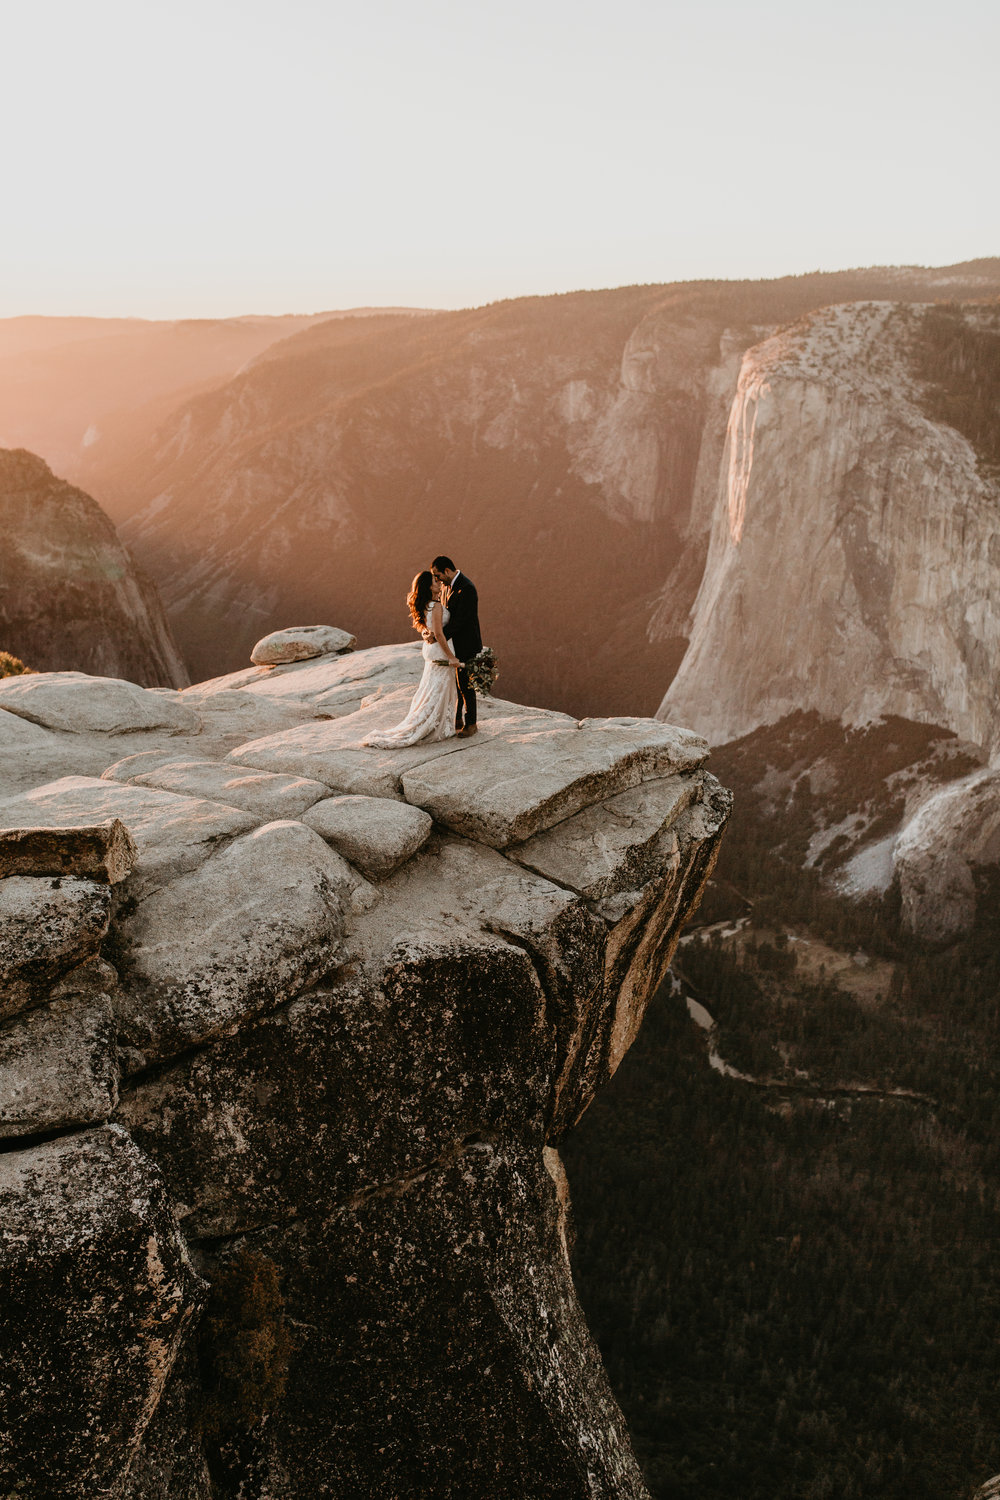 nicole-daacke-photography-intimate-elopement-wedding-yosemite-national-park-california-taft-point-sunset-photos-yosemite-valley-tunnel-view-first-look-sunrise-golden-granite-hiking-adventure-wedding-adventurous-elopement-photographer-118.jpg